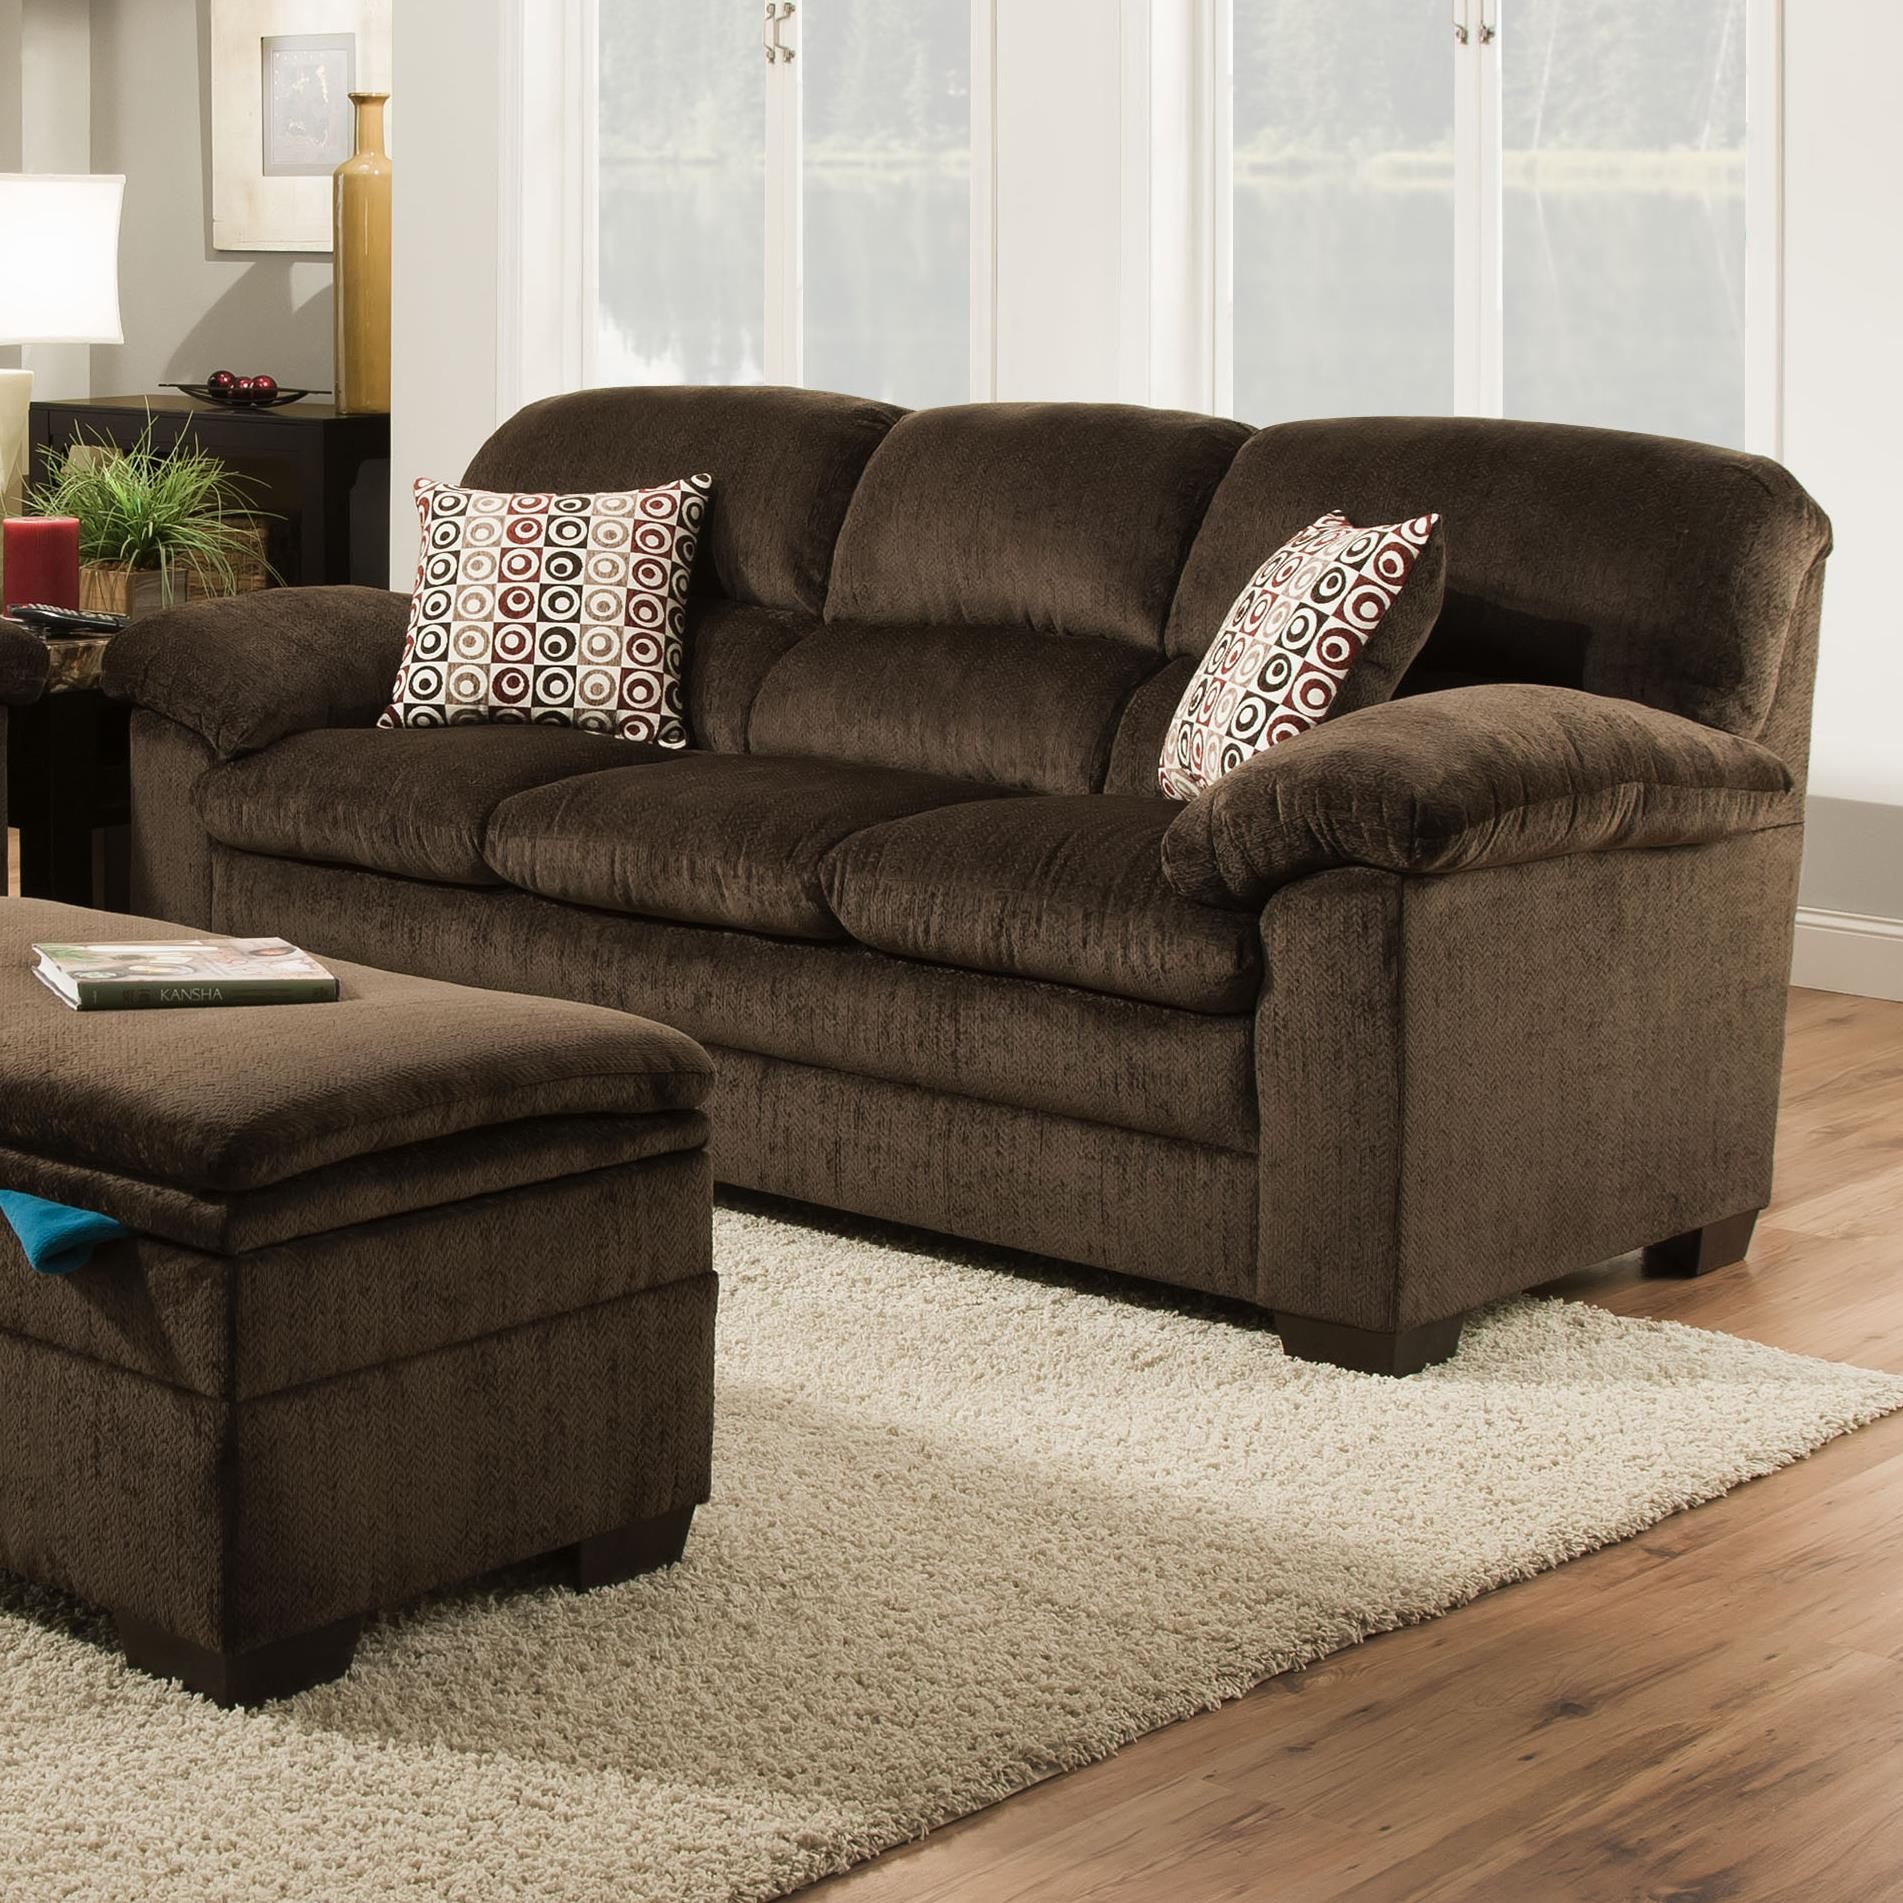 United Furniture Industries 3684 Stationary Sofa with Pillow Arms